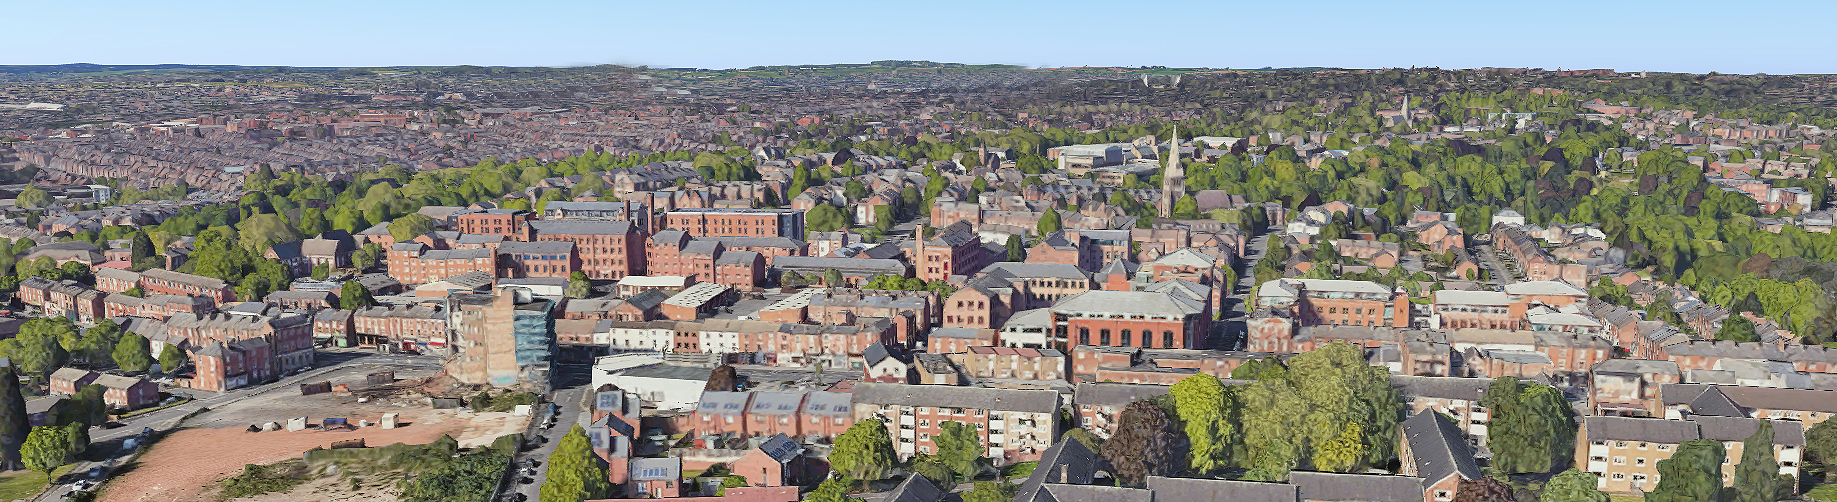 Aerial view of the Raleigh Street area of Radford, Nottingham